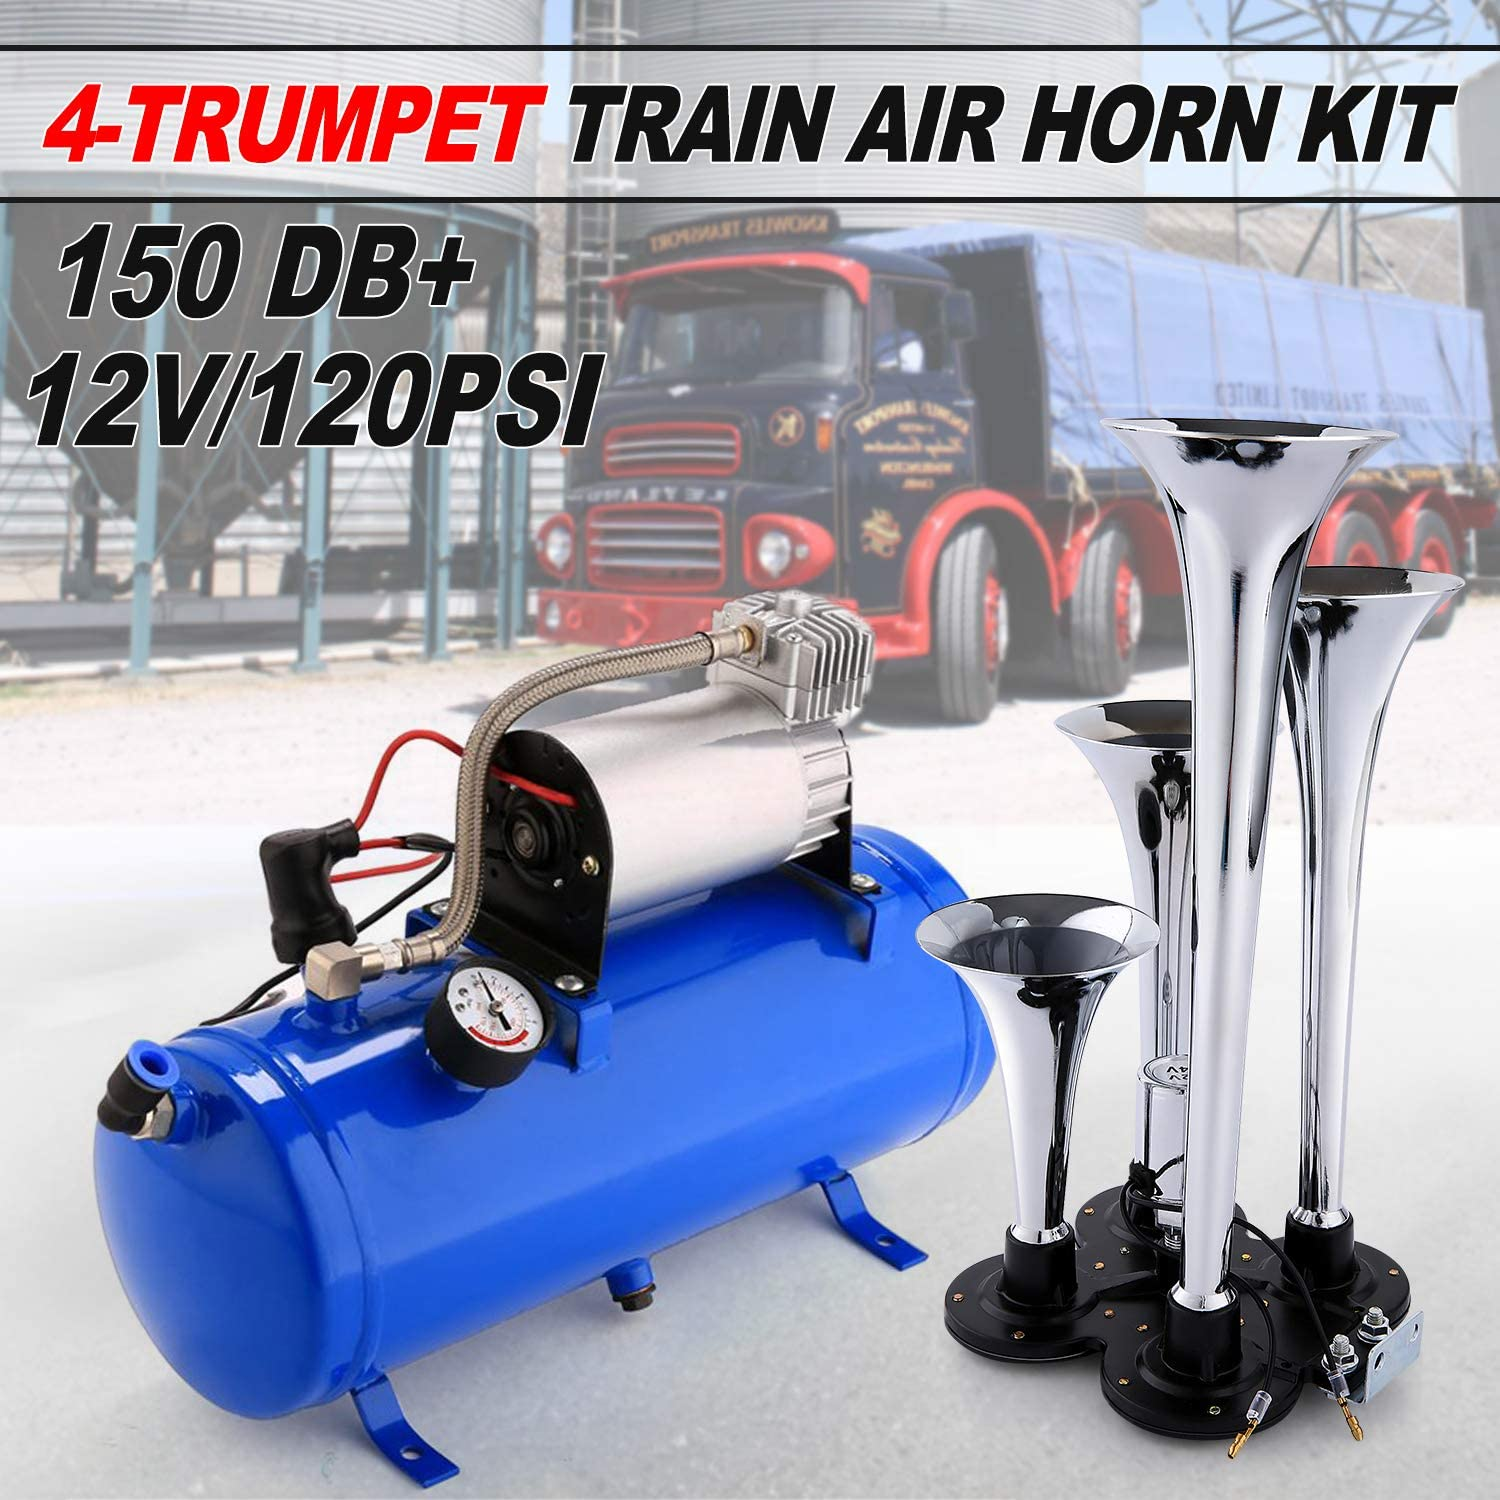 OppsDecor 12V 150DB Car Air Horn Kit Jeep or SUV Truck 4 Trumpet Train Vehicle Air Horn with 120PSI Air Compressor for All Kinds of Vehicle Blue Car